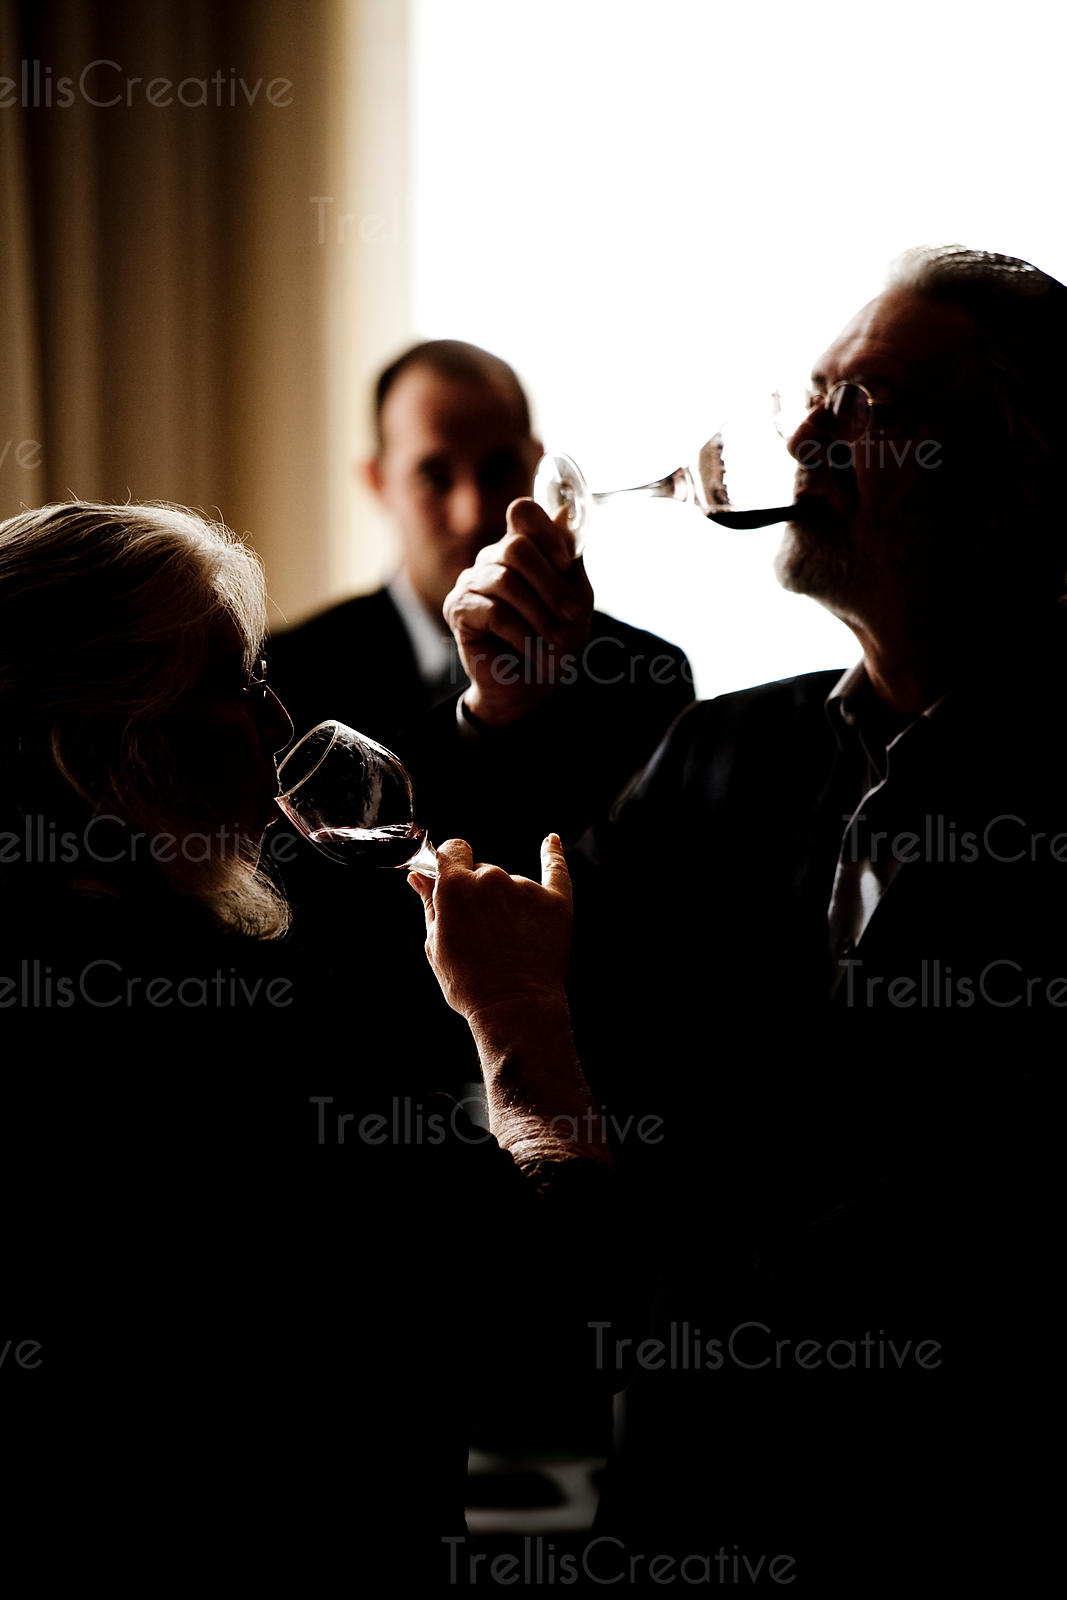 Silhouette of an older man and woman tasting wine